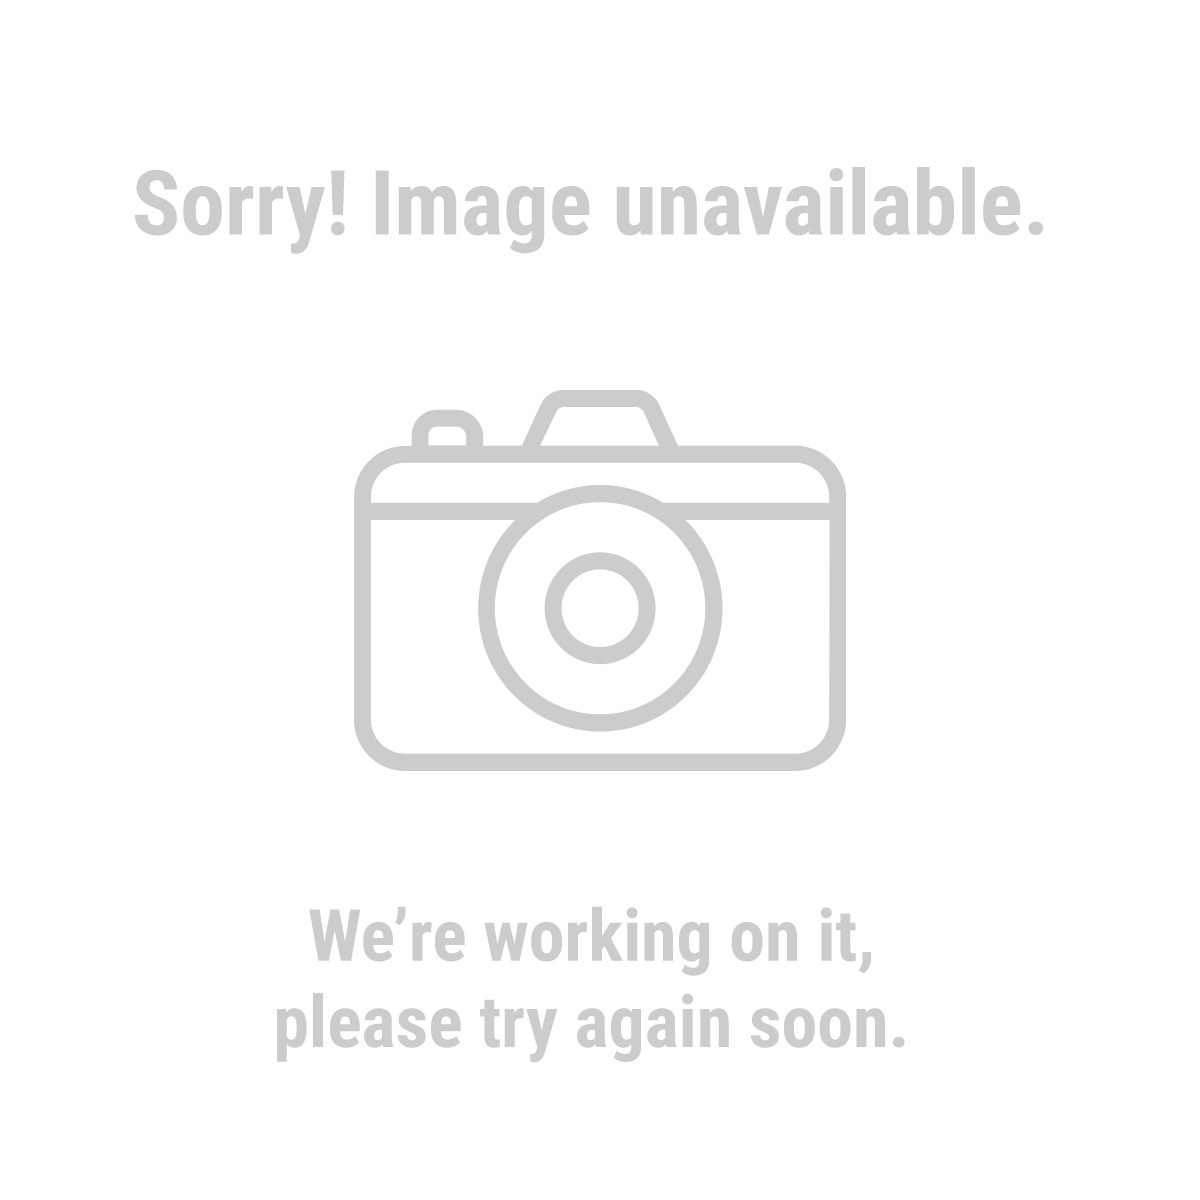 Central Pneumatic 66839 2-1/2 Gallon Pressure Paint Tank